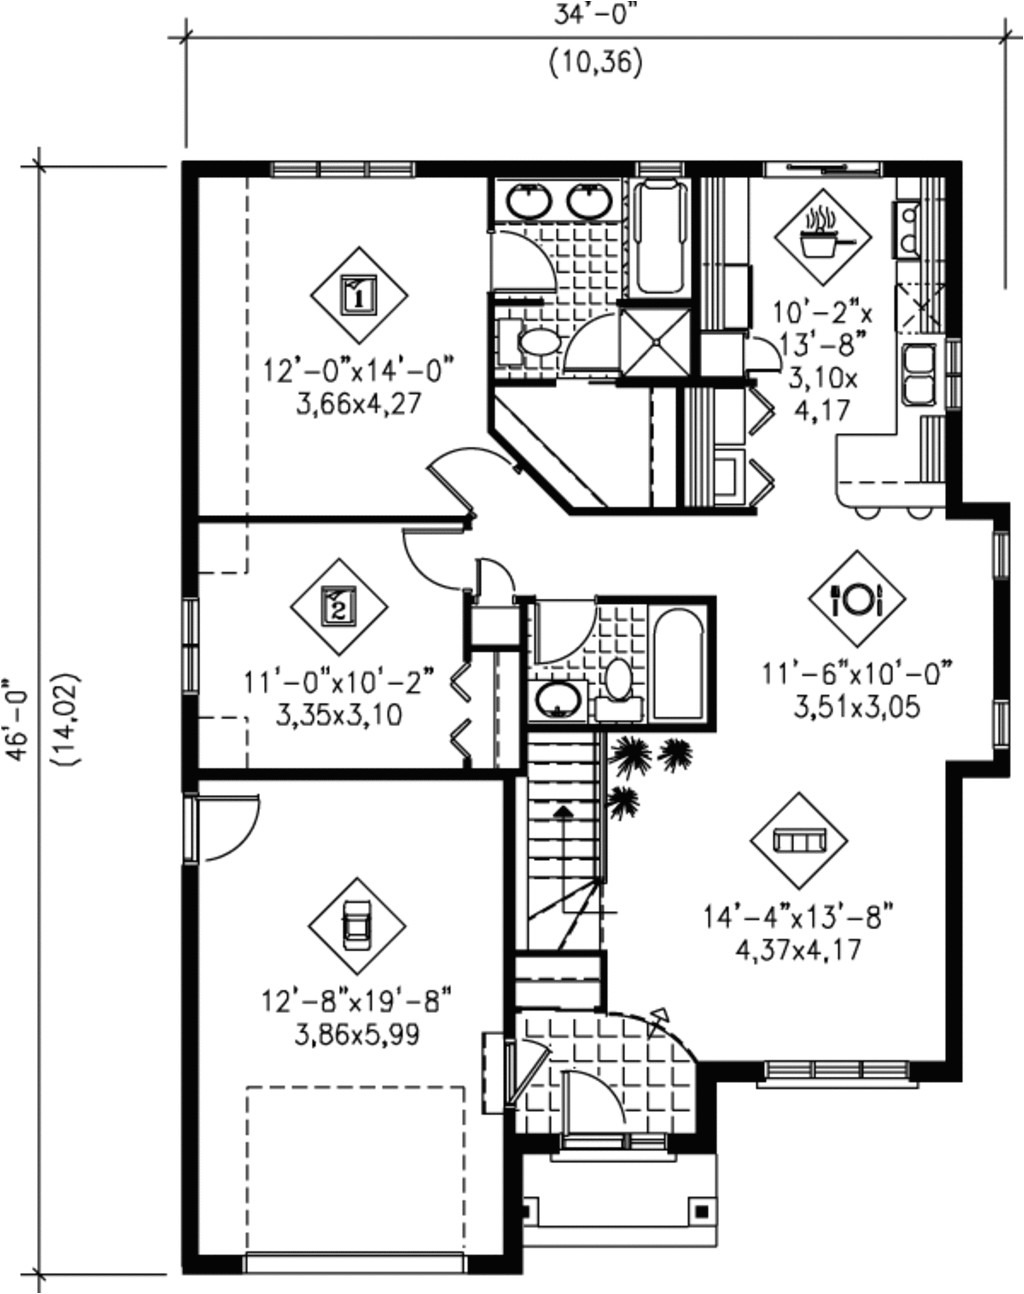 1100 square feet 2 bedrooms 2 bathroom european house plans 1 garage 1519